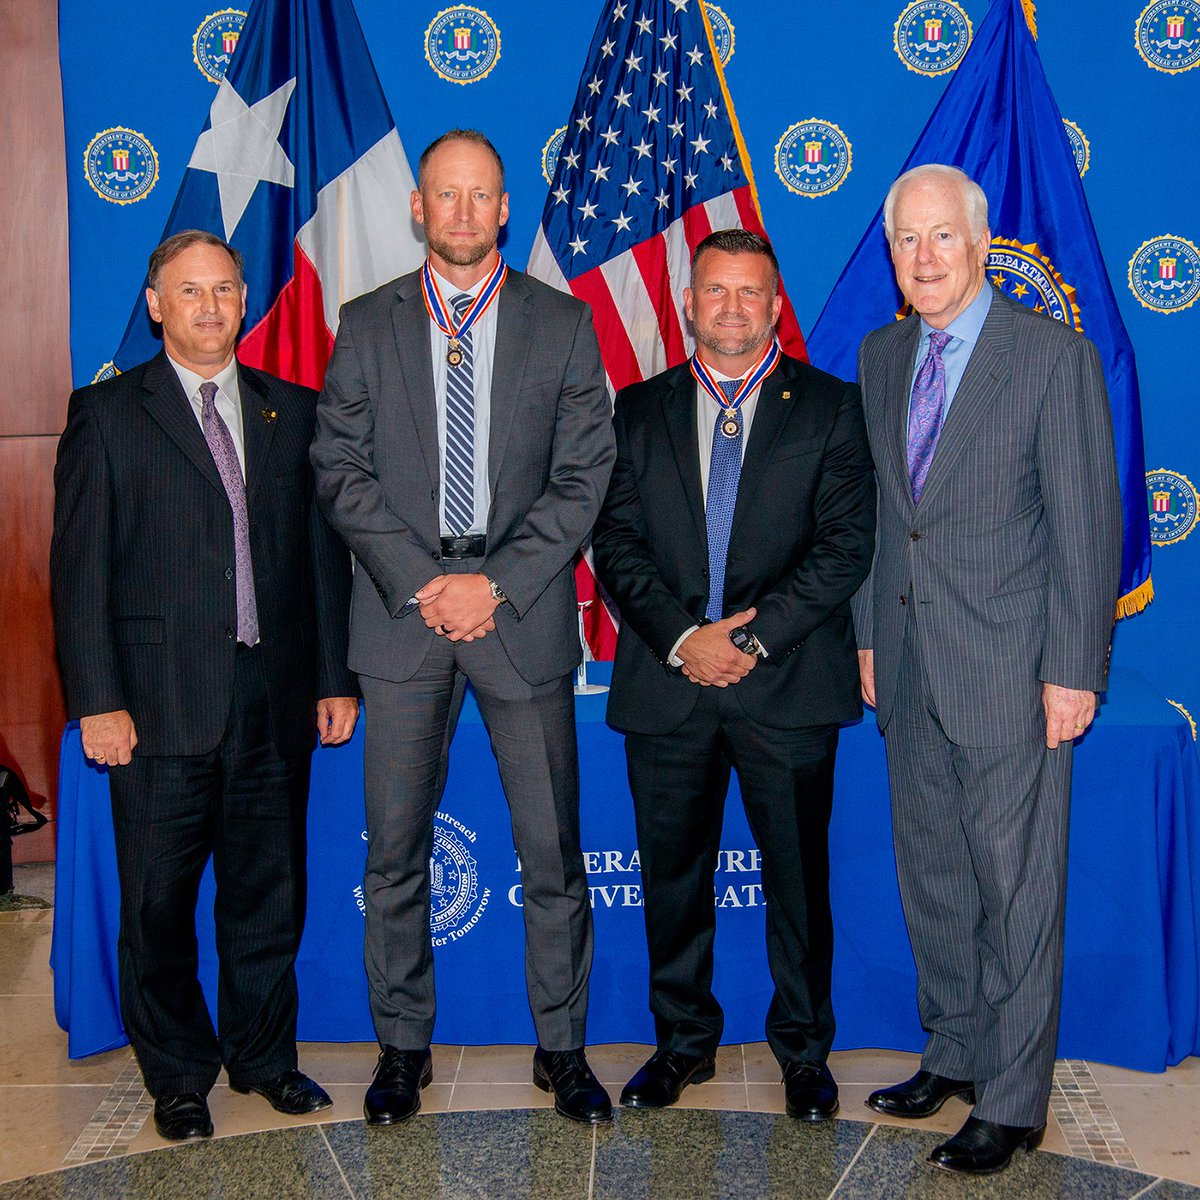 Special Agents Jeb Killion and Marcus Washington of @FBISanAntonio recently received the Congressional Badge of Bravery for their courage during an operation. Their actions prevented an armed subject from potentially harming SWAT team members with an improvised explosive device.